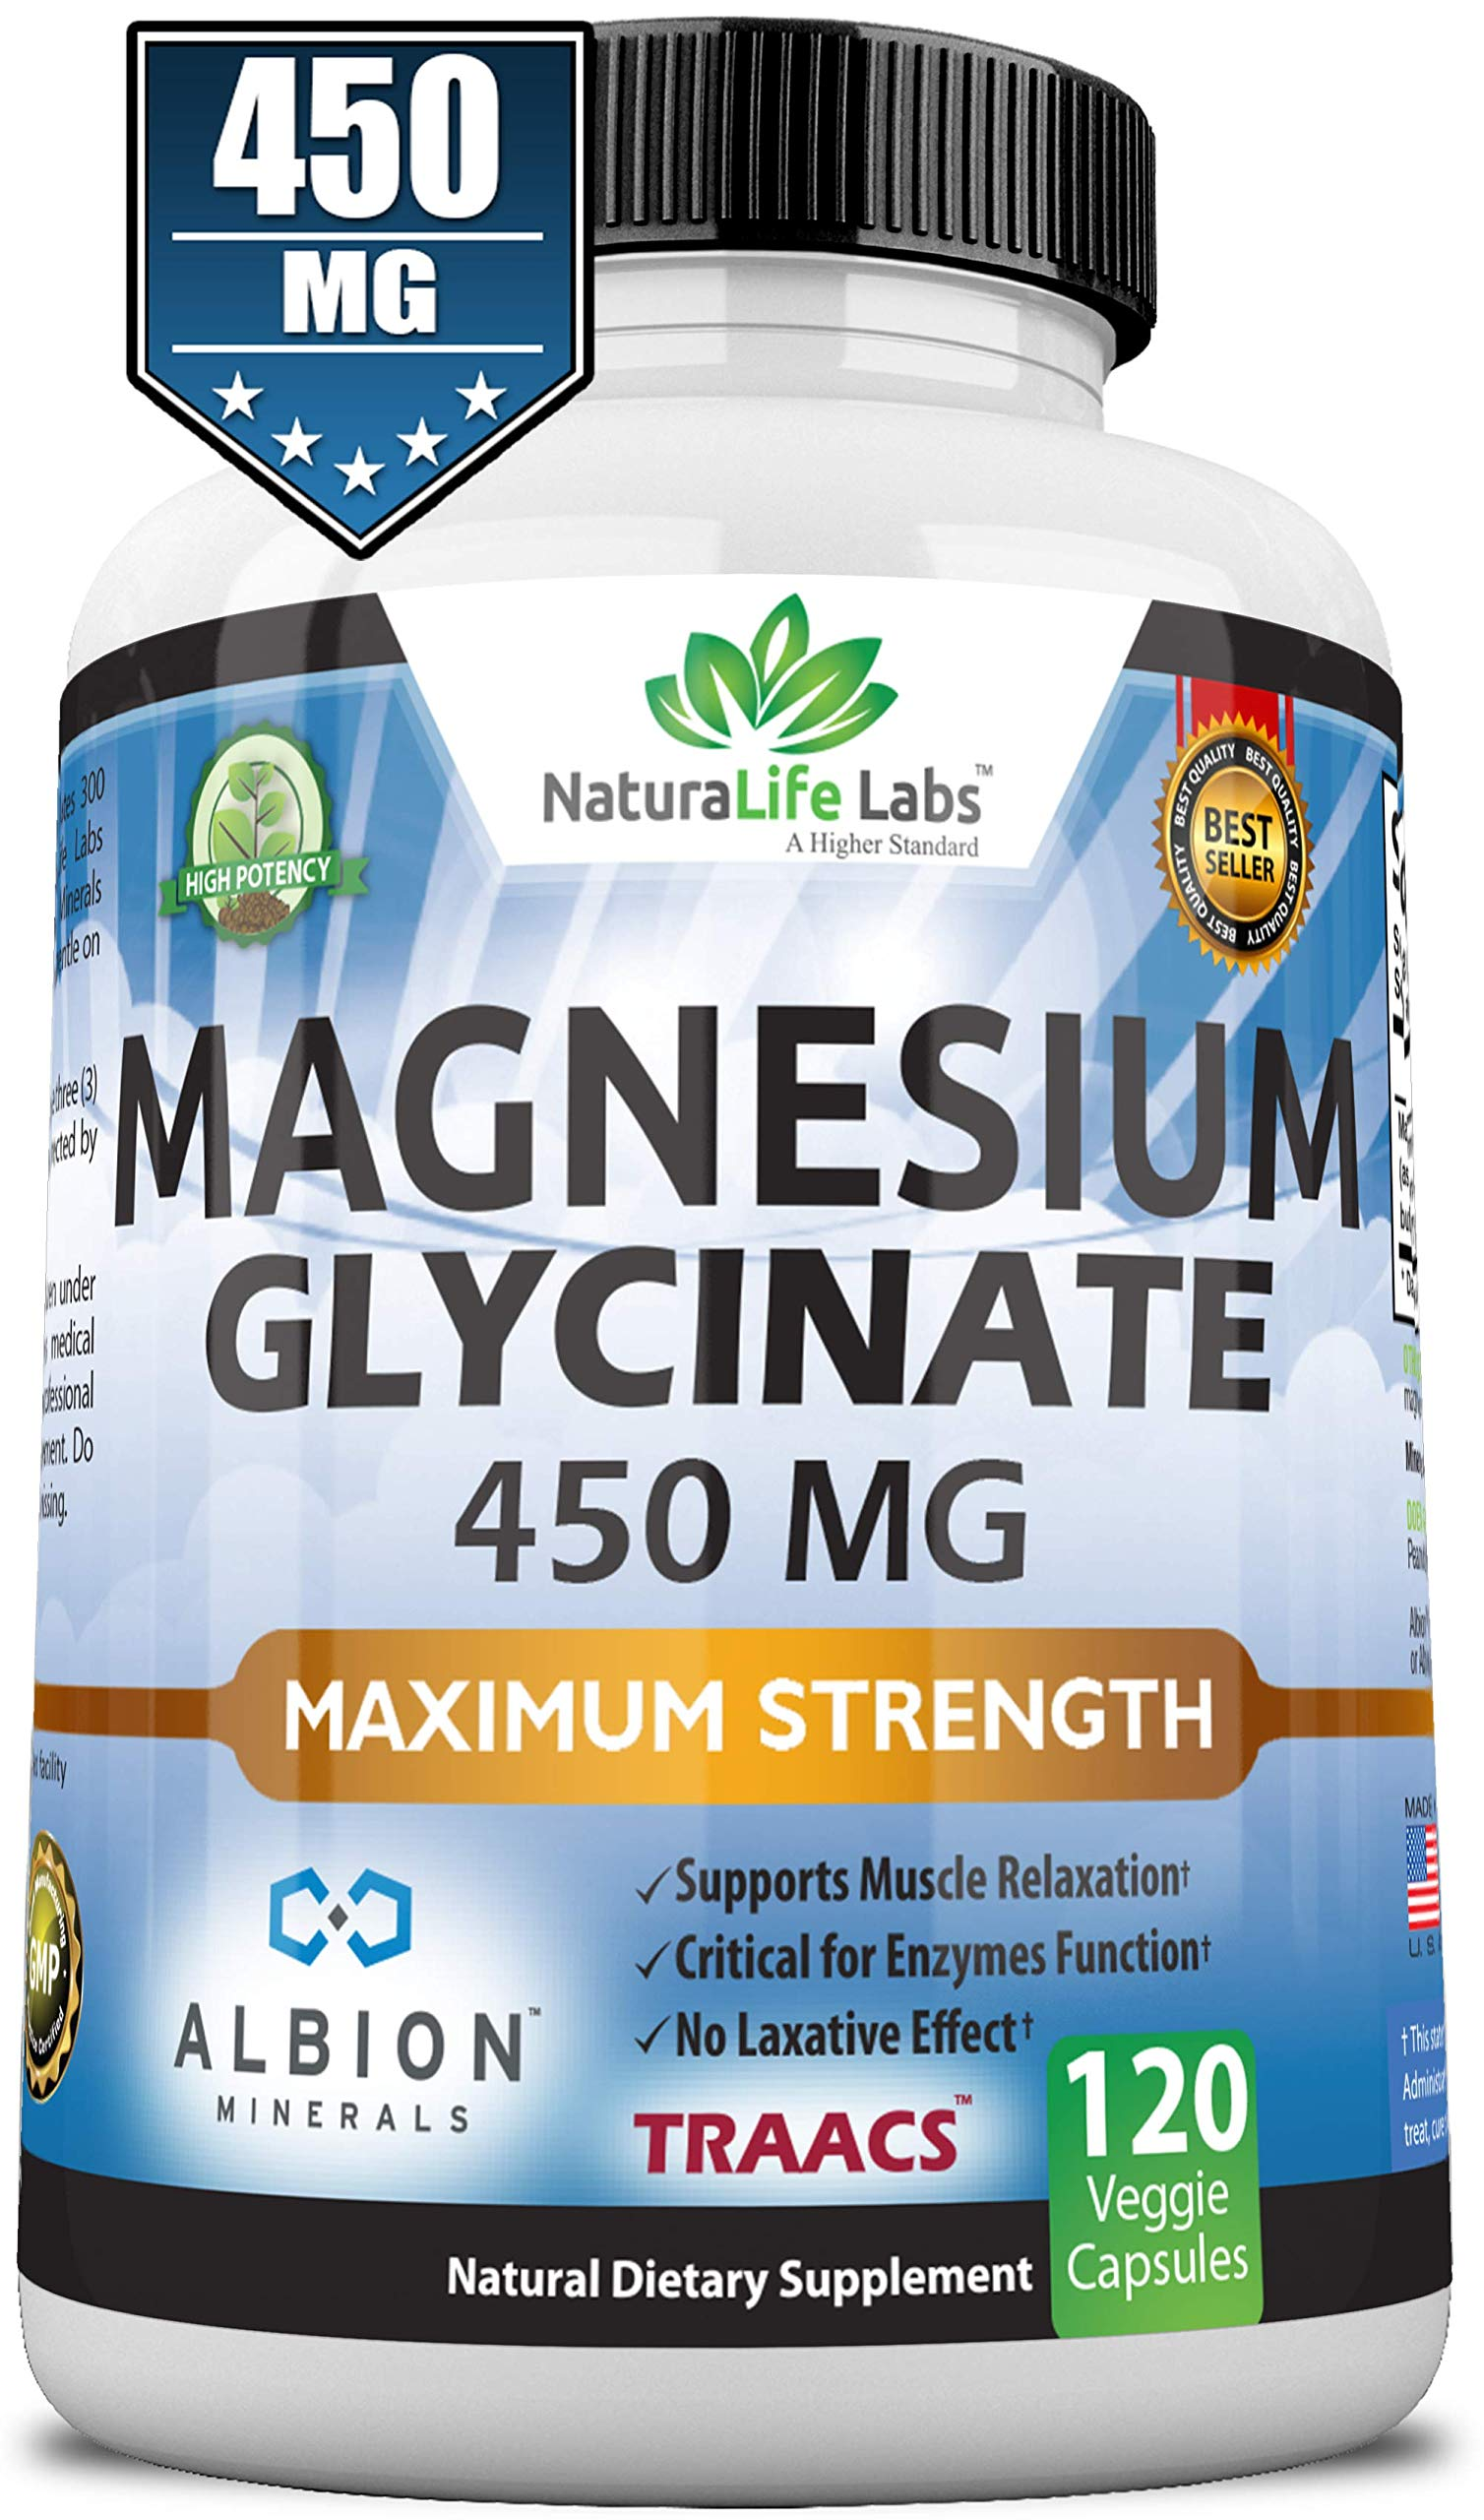 Magnesium Glycinate 450 MG Albion Minerals TRAACS Maximum Bioavailability Chelate No Laxative Effect Vegan Helps Function of Muscles, Bones, Heart Non-GMO